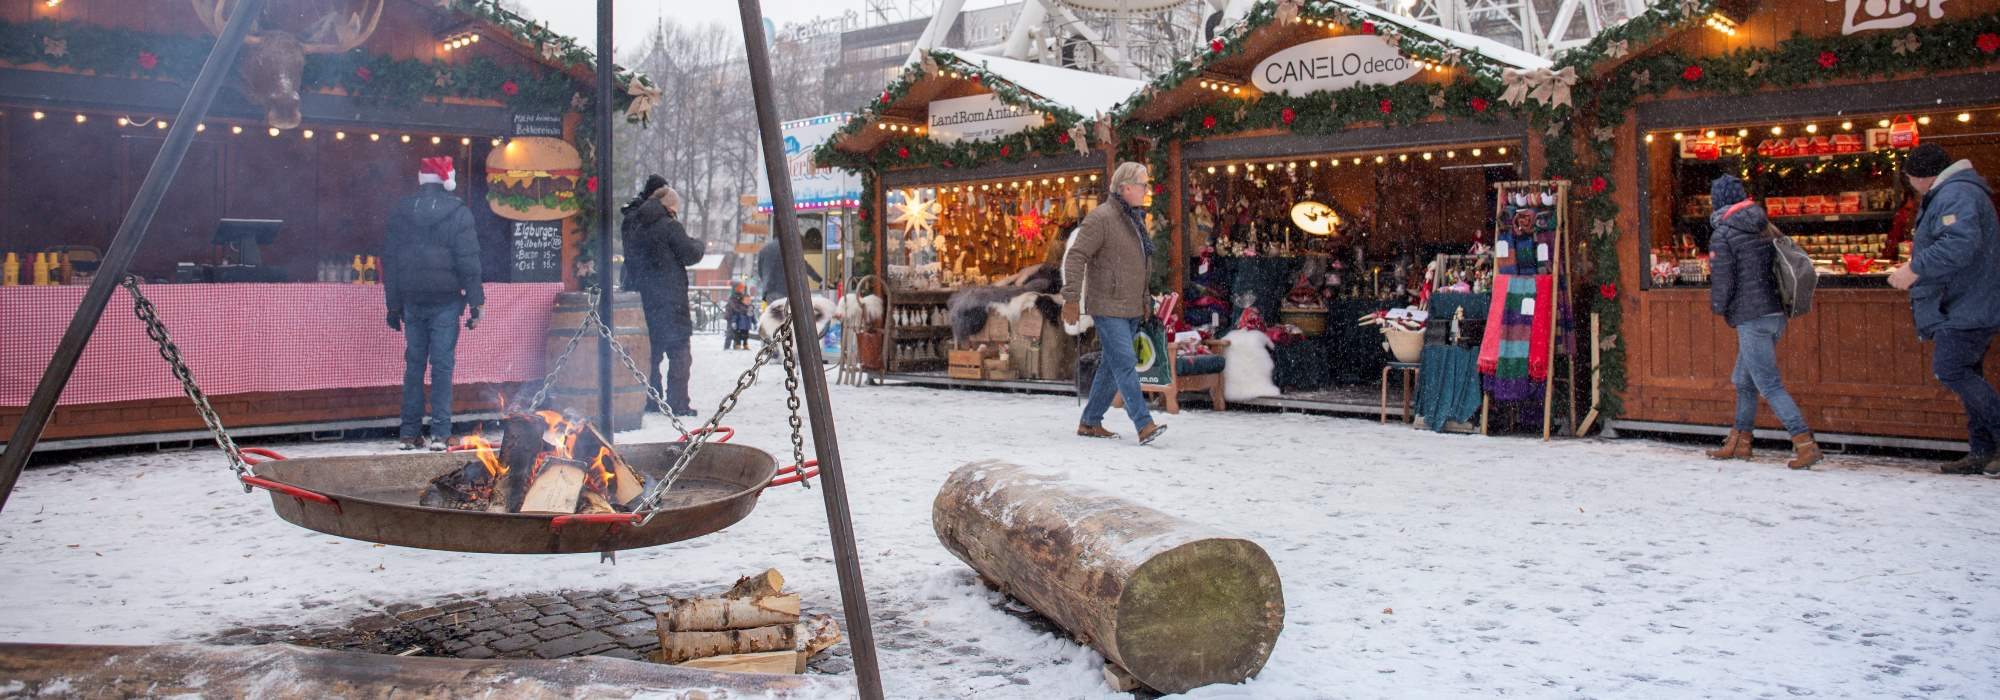 Christmas market in Oslo, detail